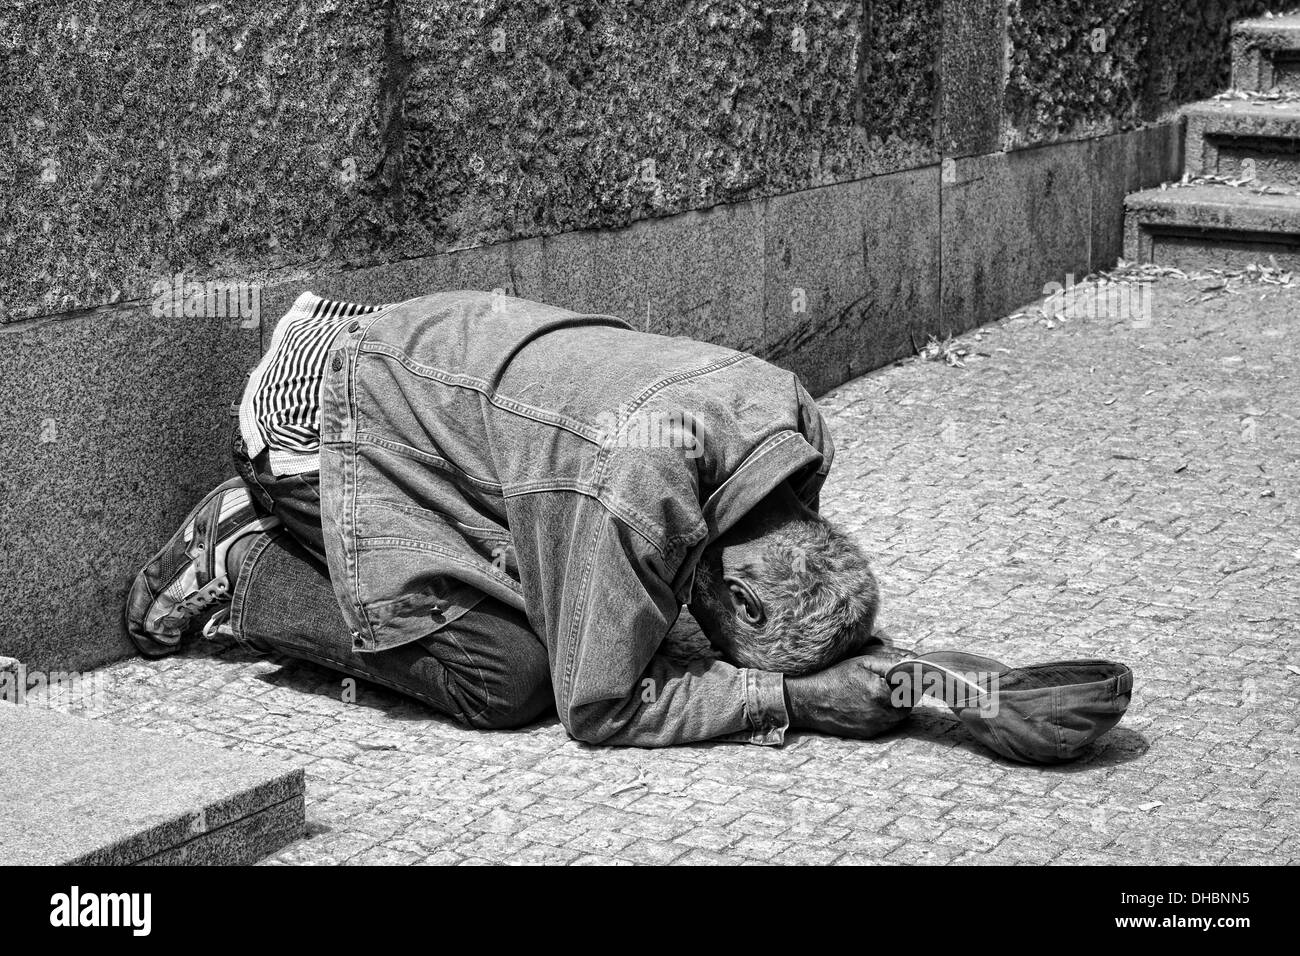 One of the many homeless in Prague, Europe lying on the street next to the river, begging tourists for money. - Stock Image